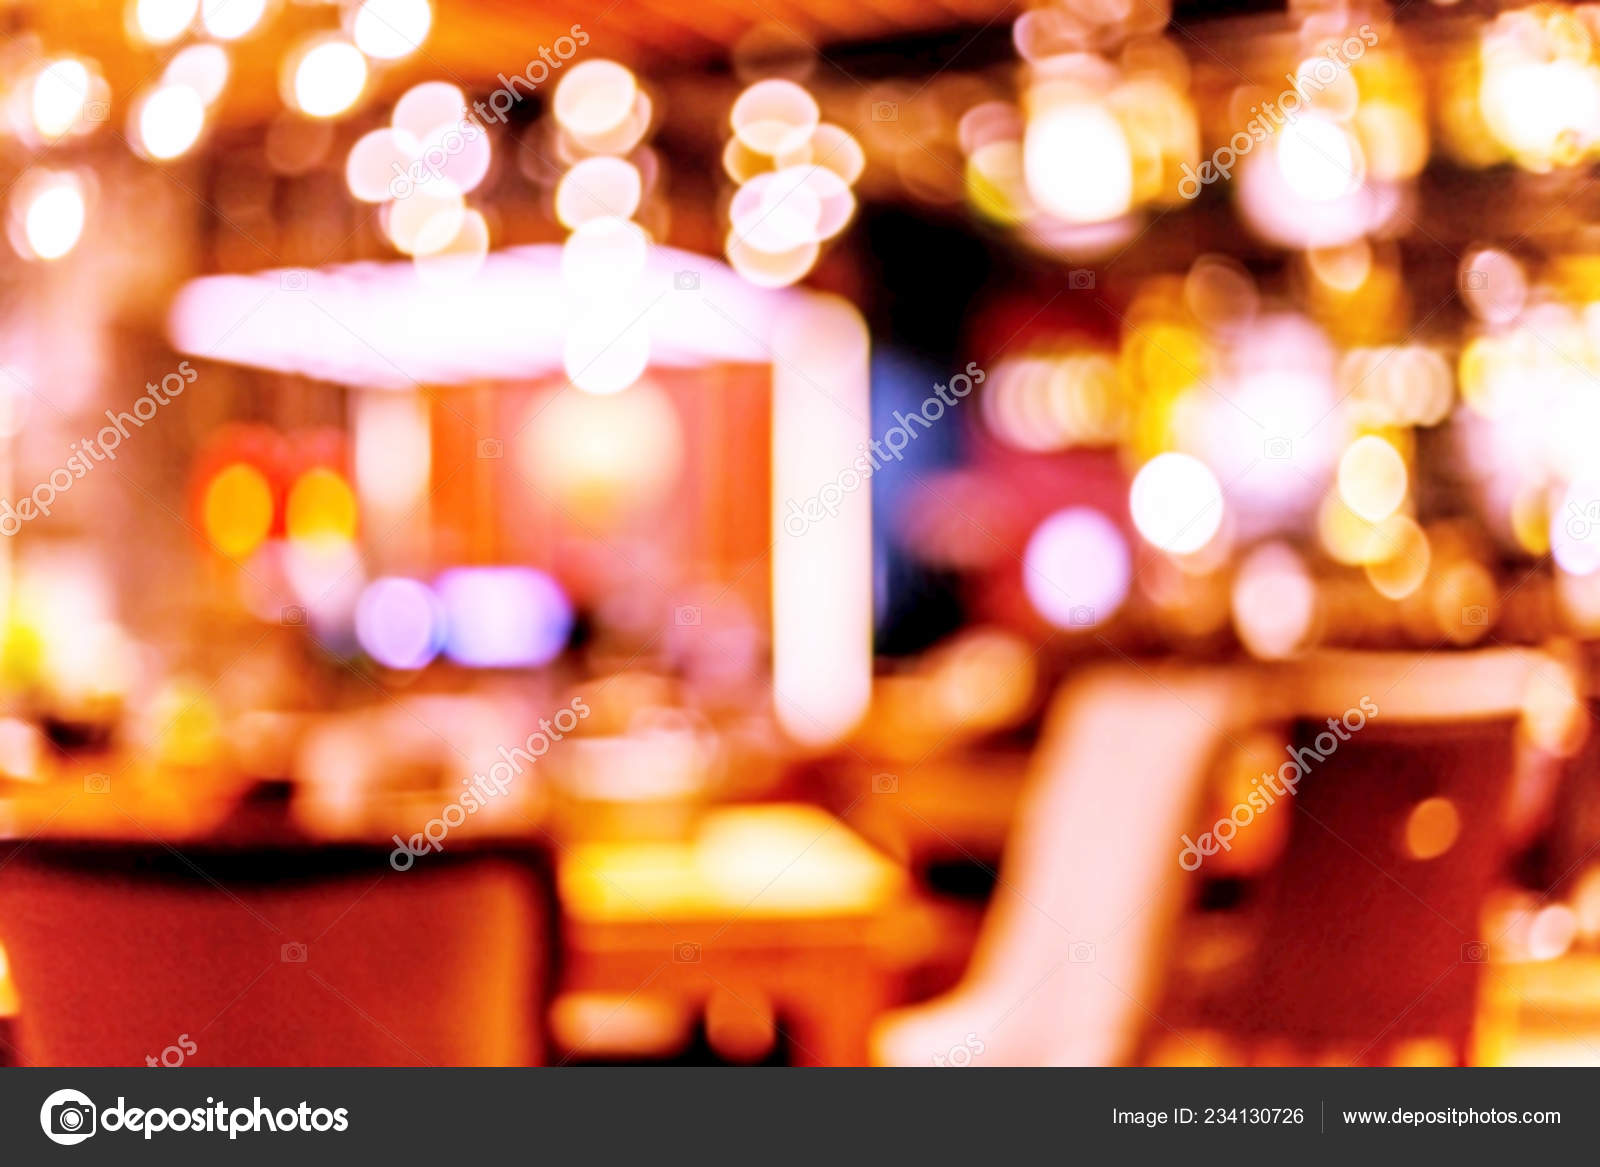 Interior Small Restaurant Blurred Background Blurred Bokeh Cafe Interior Warm Stock Photo C Alesik 234130726